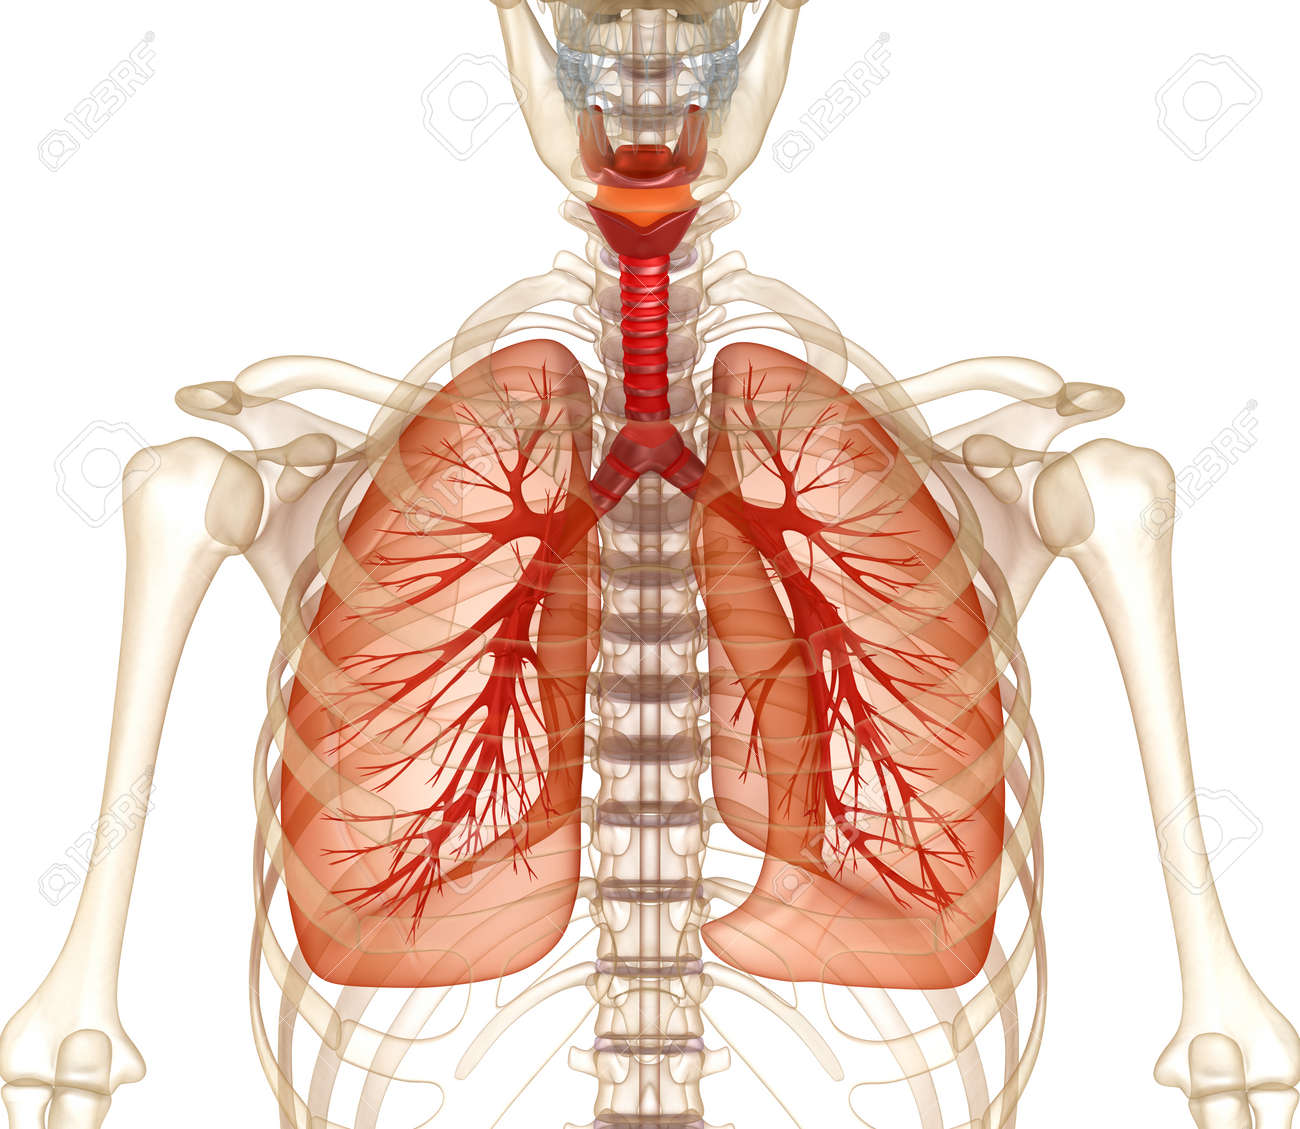 Human Lung Diagram 3d Kxhuwleidraad